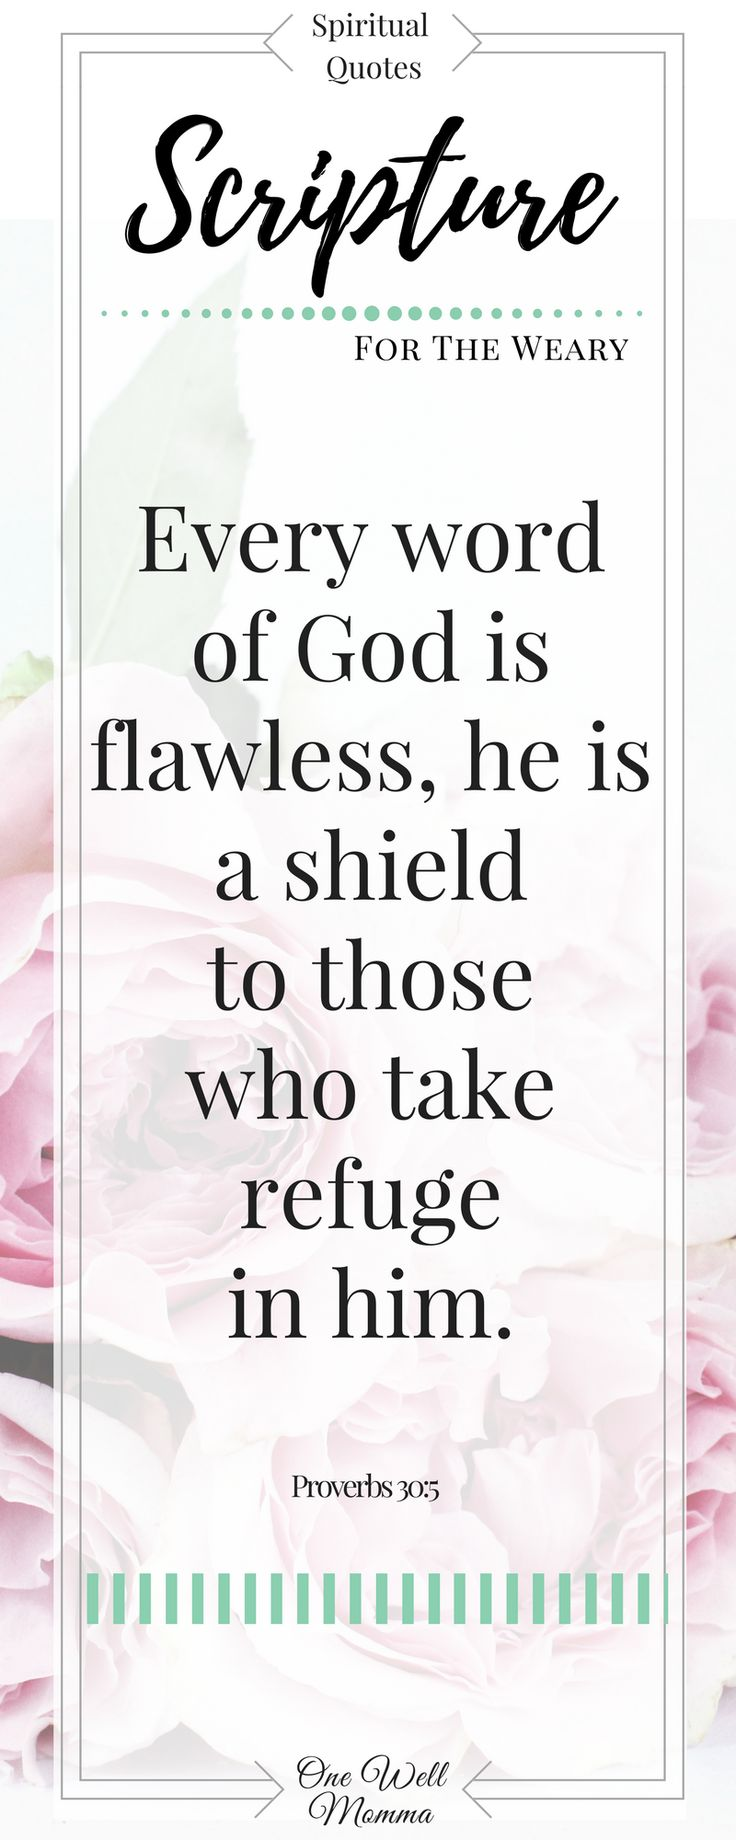 Inspirational Scripture on One Well Momma - Every Word of God is flawless, he is a shield to those who take refuge in him from 6 Traits